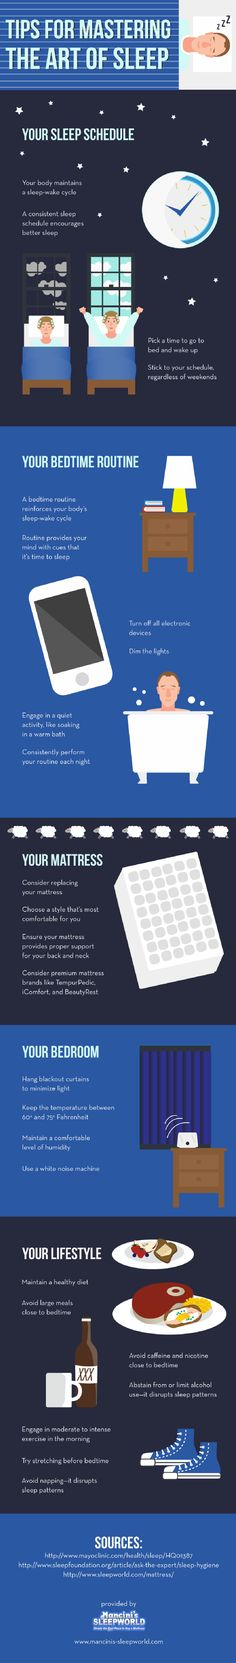 Hanging blackout curtains in the bedroom is a great way to minimize light and get a better night's rest. Discover other tips for getting better sleep by clicking over to this infographic from a mattress store in the Bay Area.